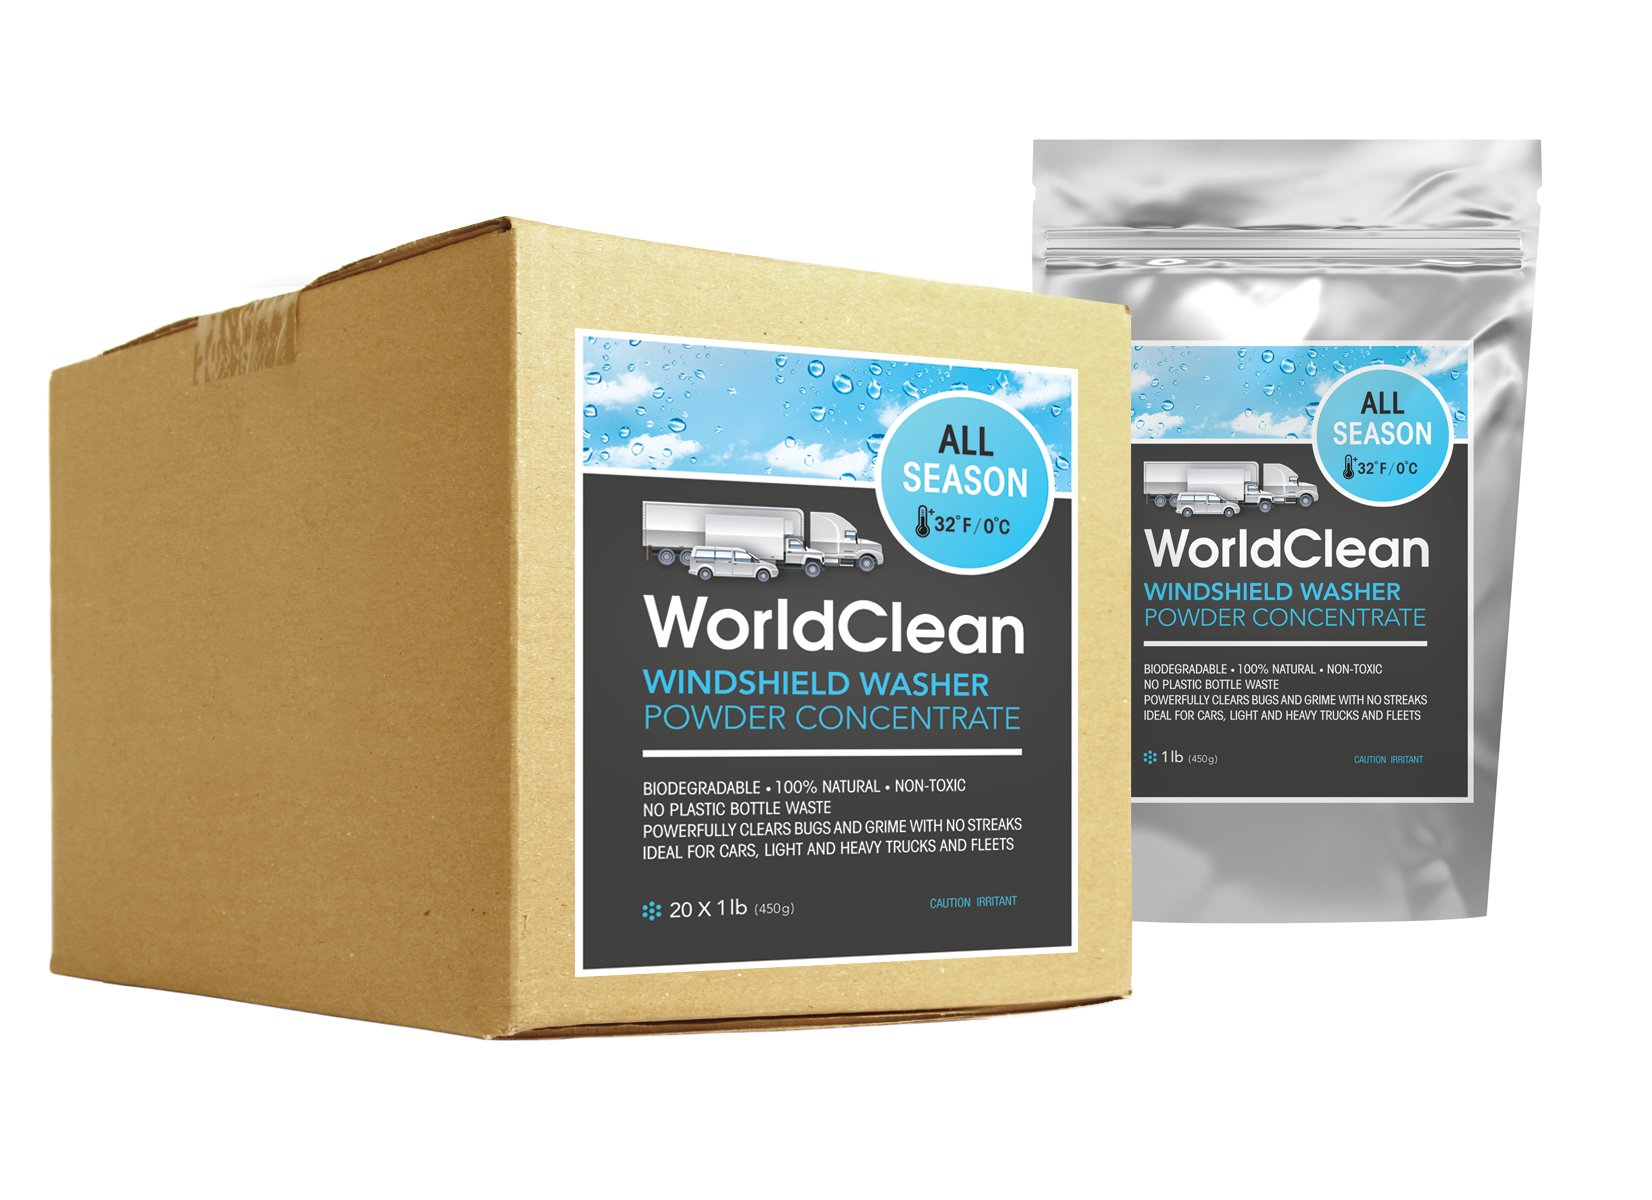 WorldClean biodegradable windshield washer powder concentrate 20packs of 1lb (yields 1100gal) by WorldCleanShop